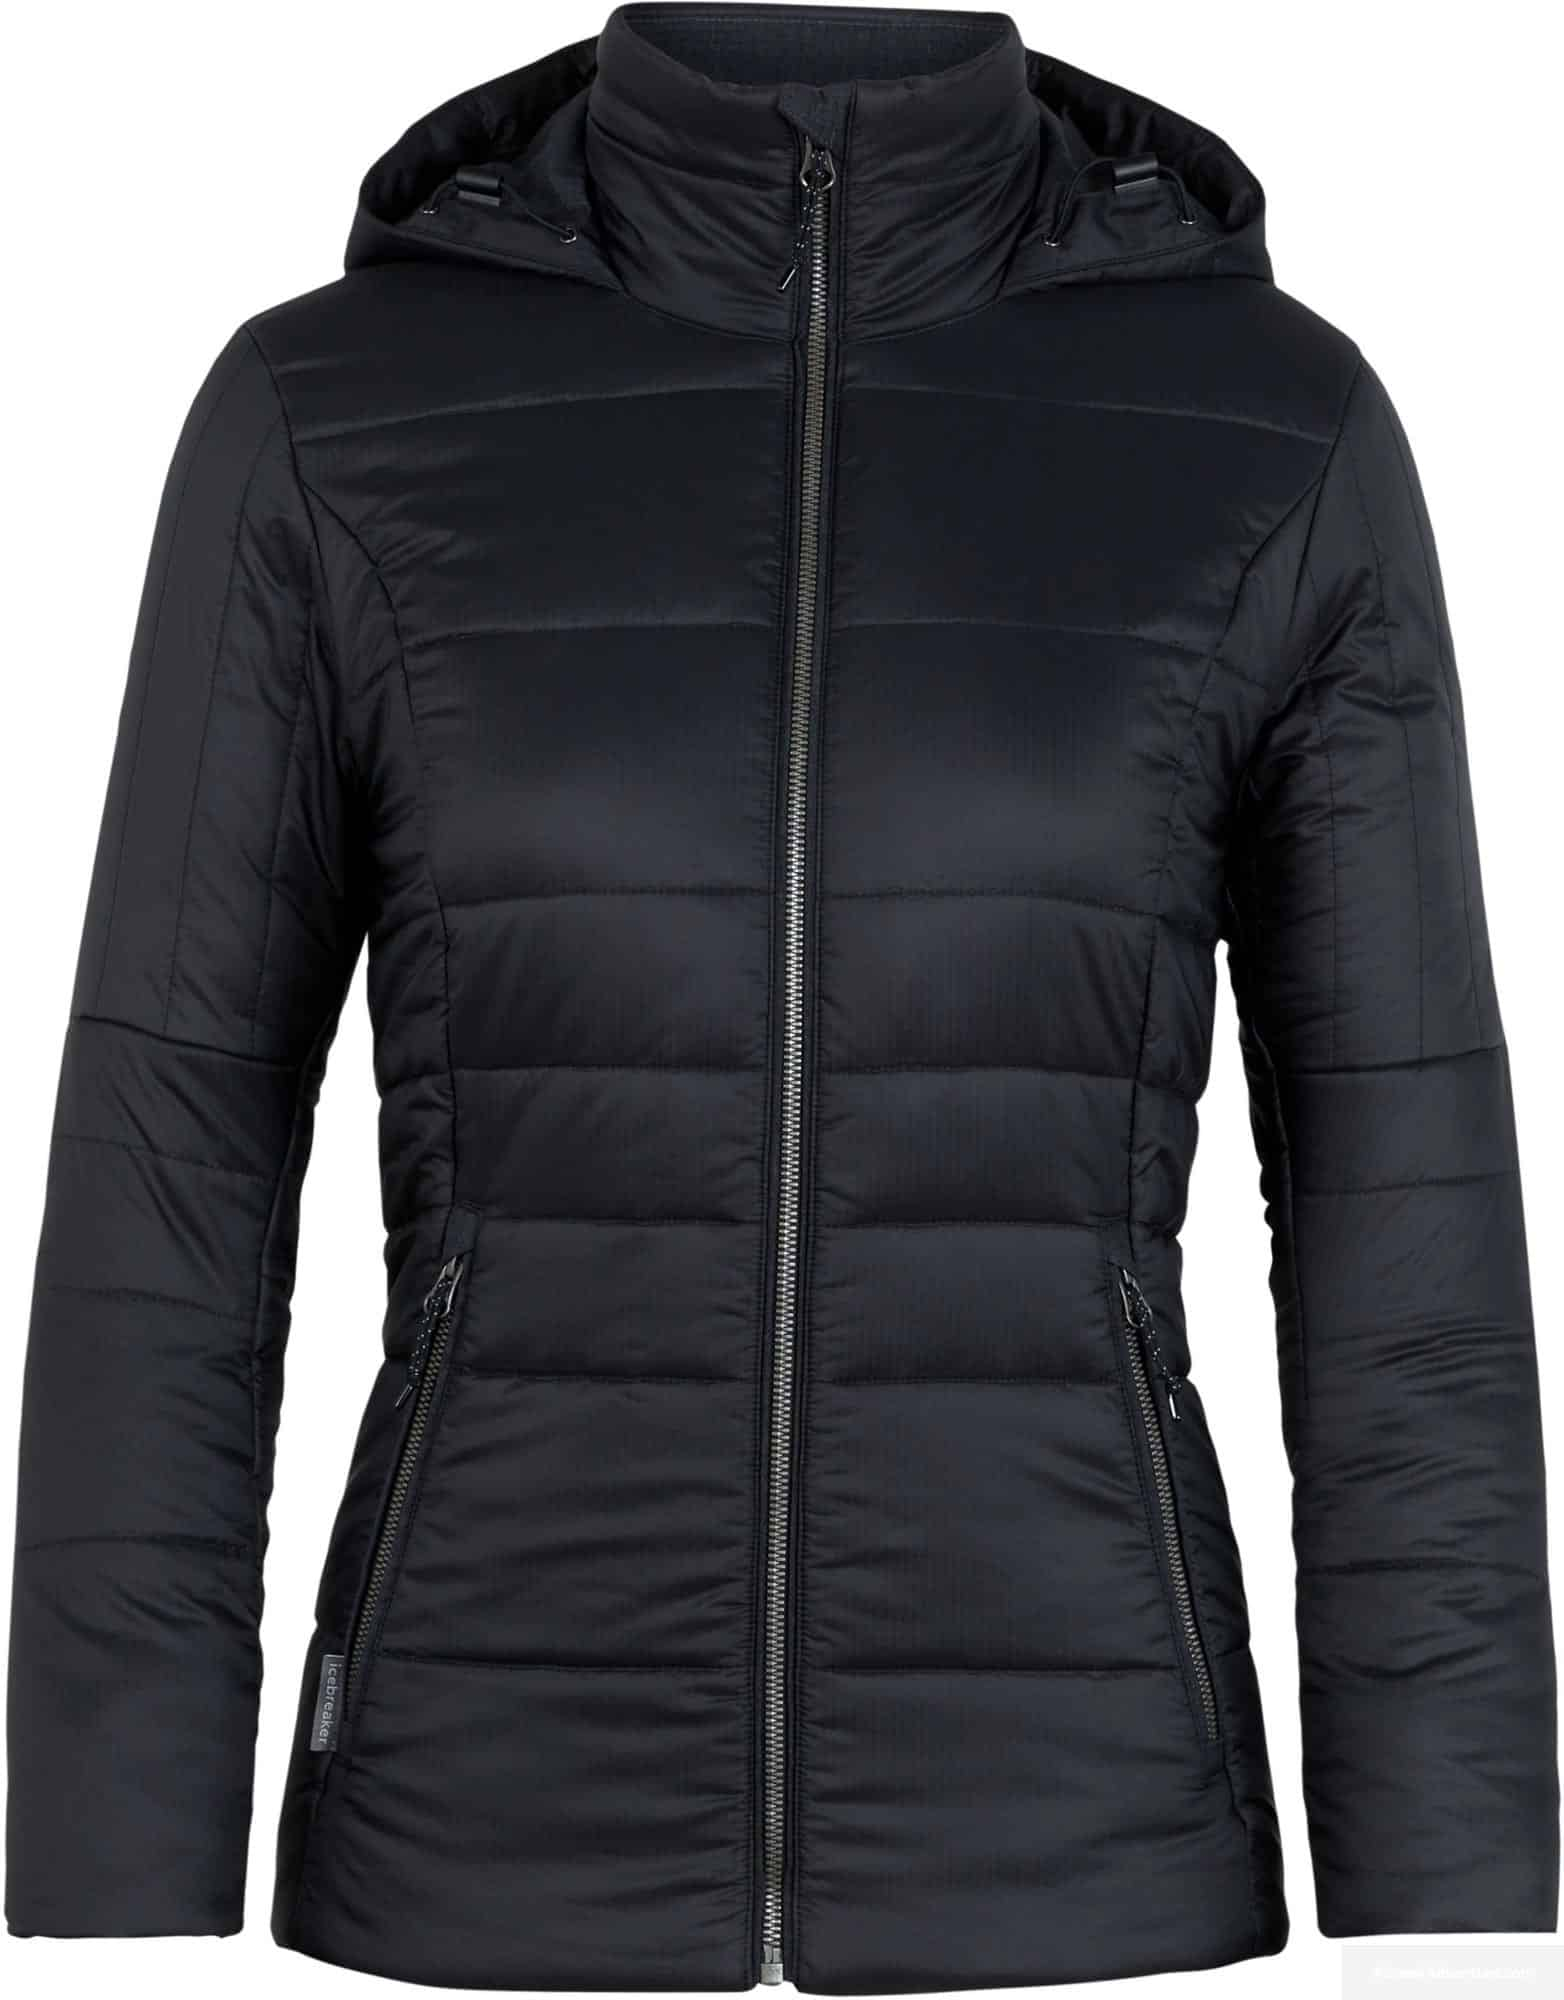 Stratus X Hooded Insulated Jacket - Women